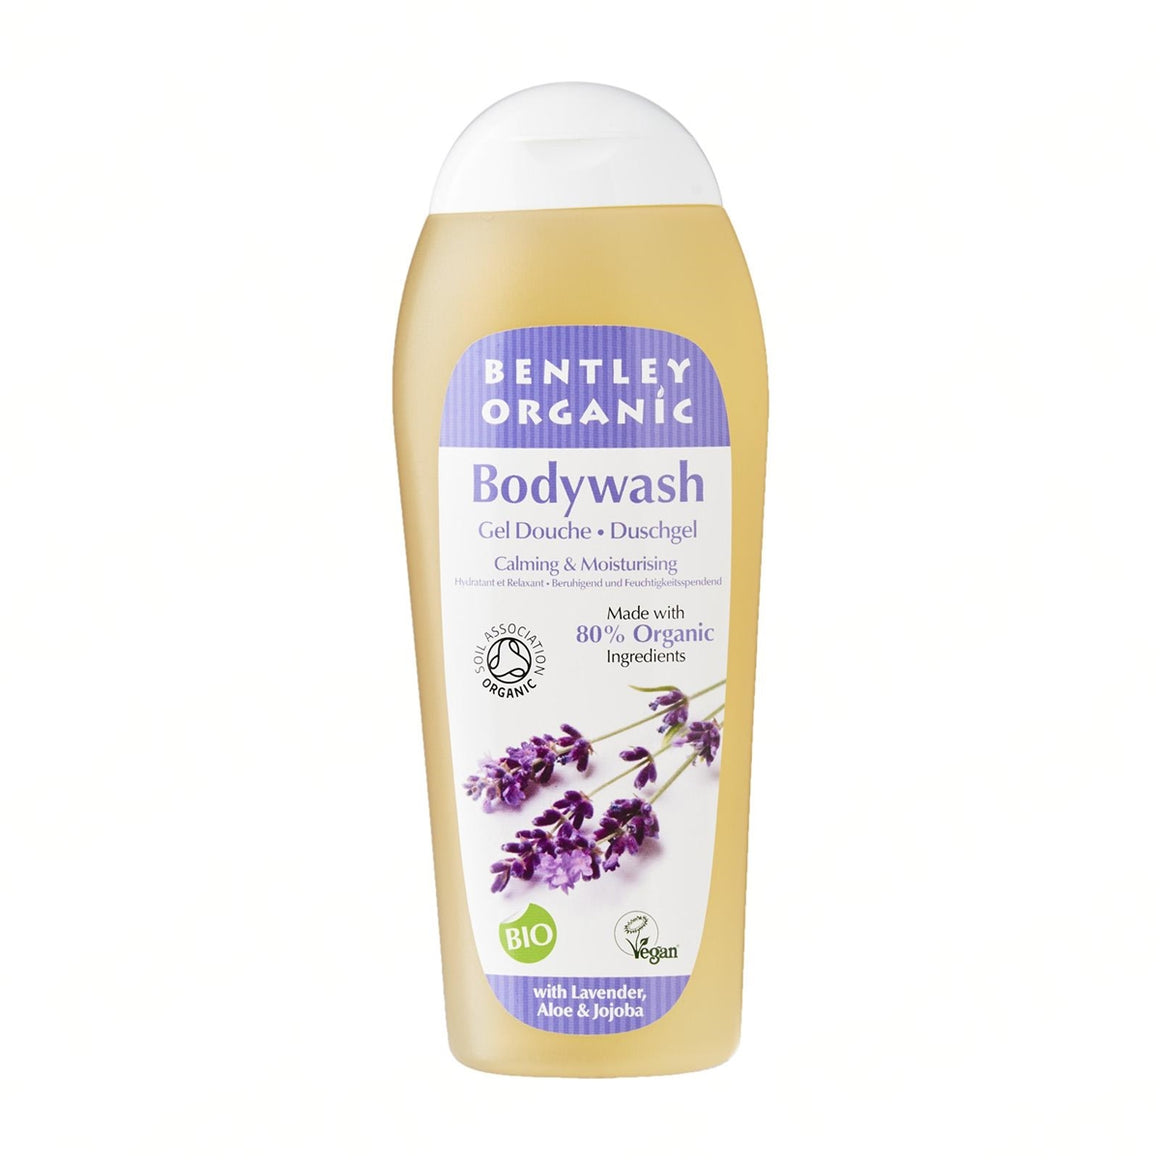 Calming and Moisturising Bodywash - Aldha